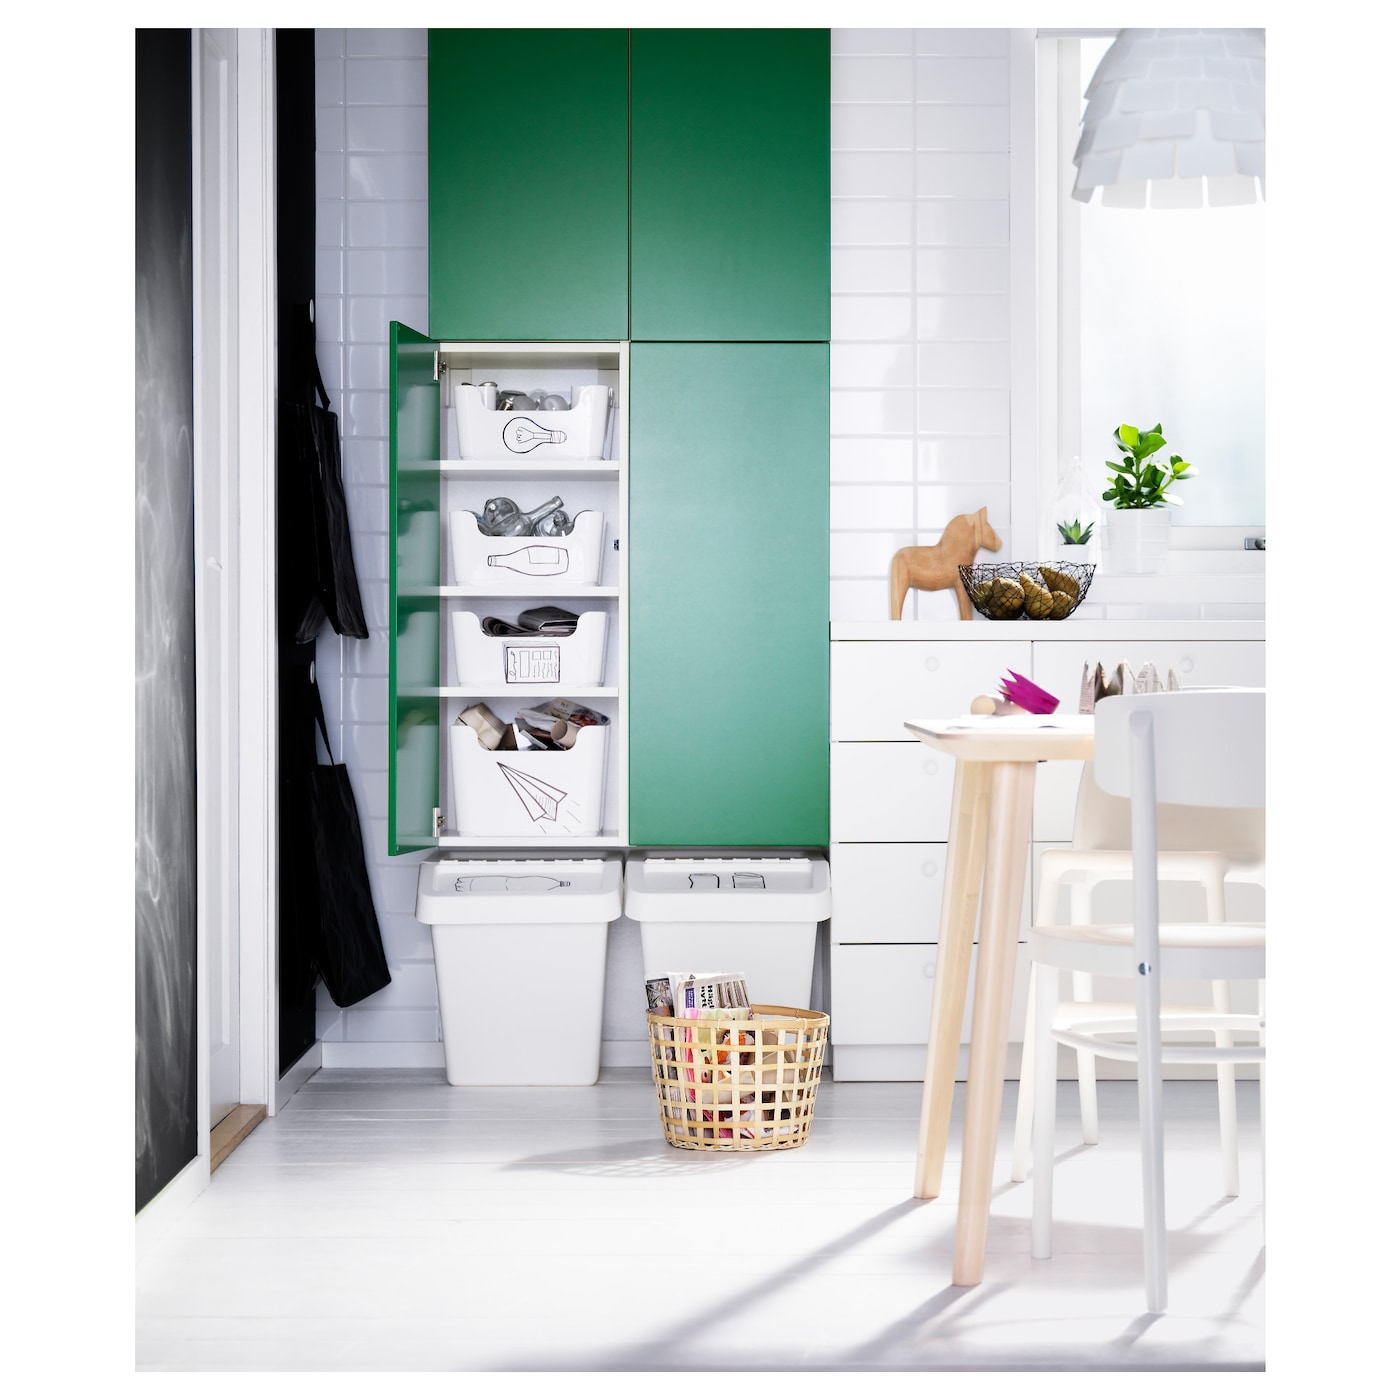 IKEA FLÄDIE door 25 year guarantee. Read about the terms in the guarantee brochure.